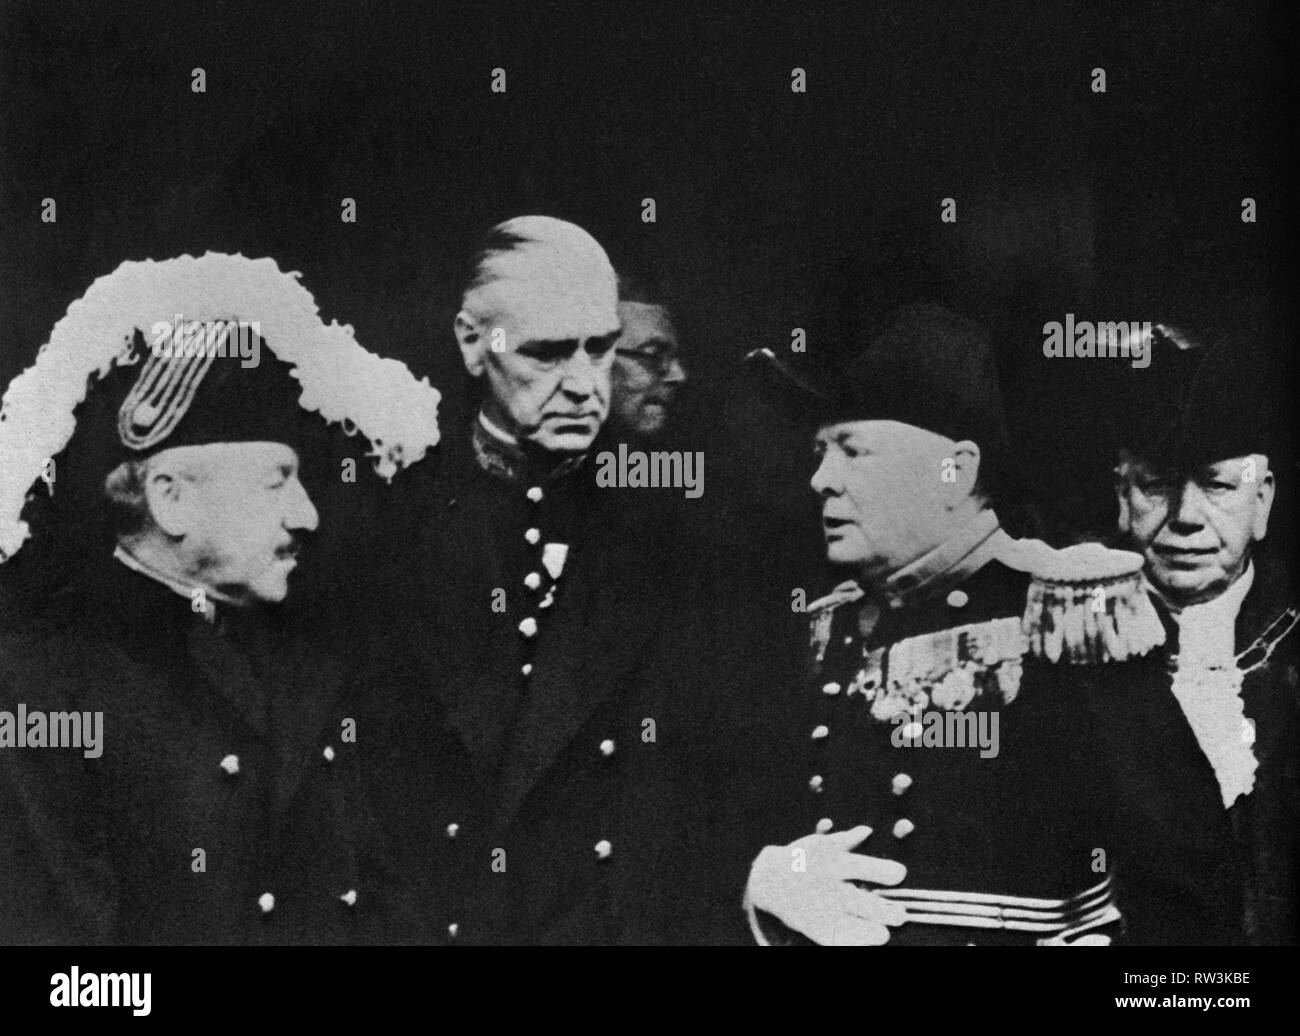 Winston Churchill  with a group of  Privy Councillors in a photograph taken on the day of accession of Edward Vlll,  20th January 1936 - Stock Image